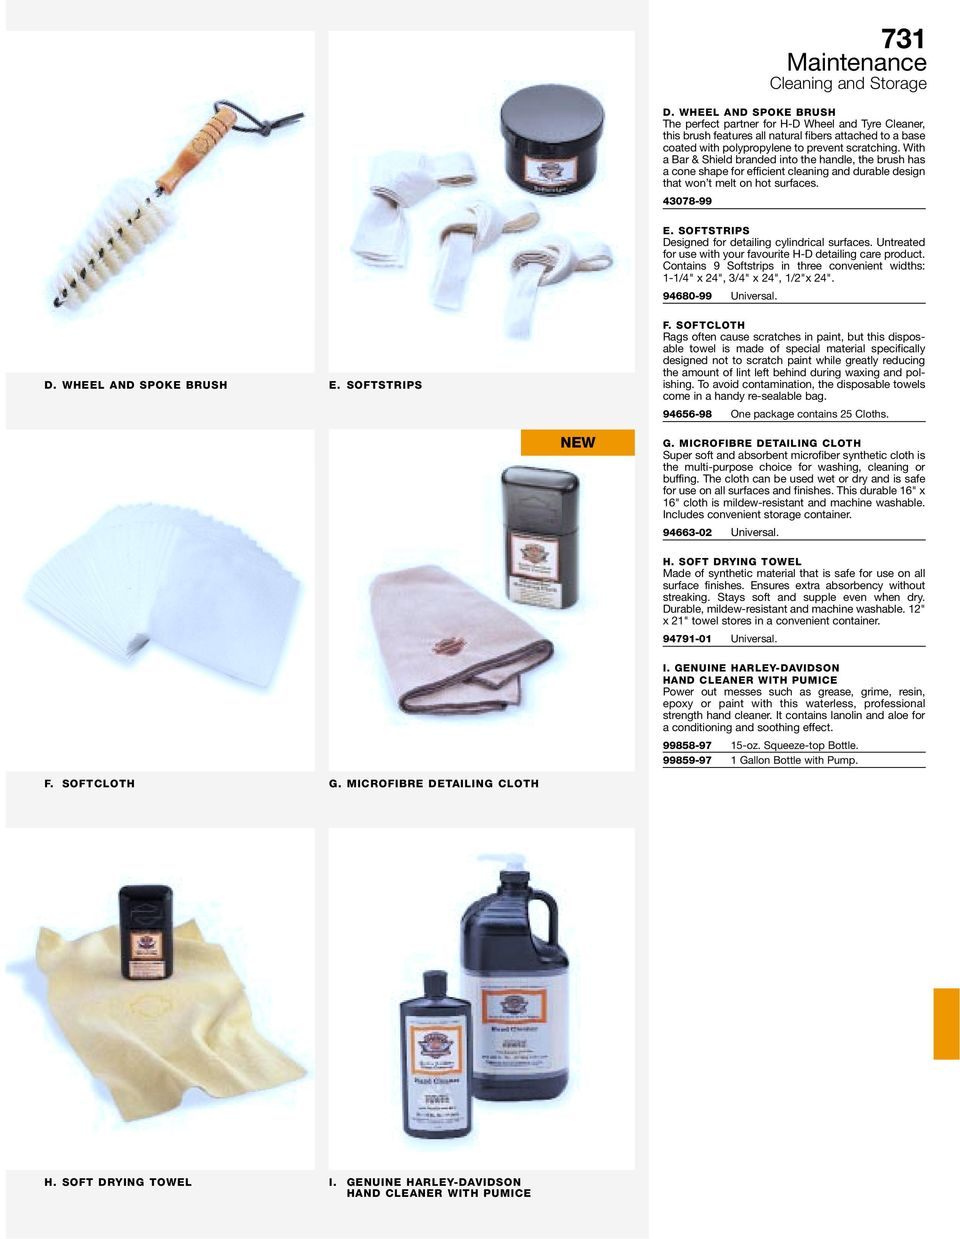 Security Maintenance Pdf Harley Davidson Leather Protectant With A Bar Shield Branded Into The Handle Brush Has Cone Shape